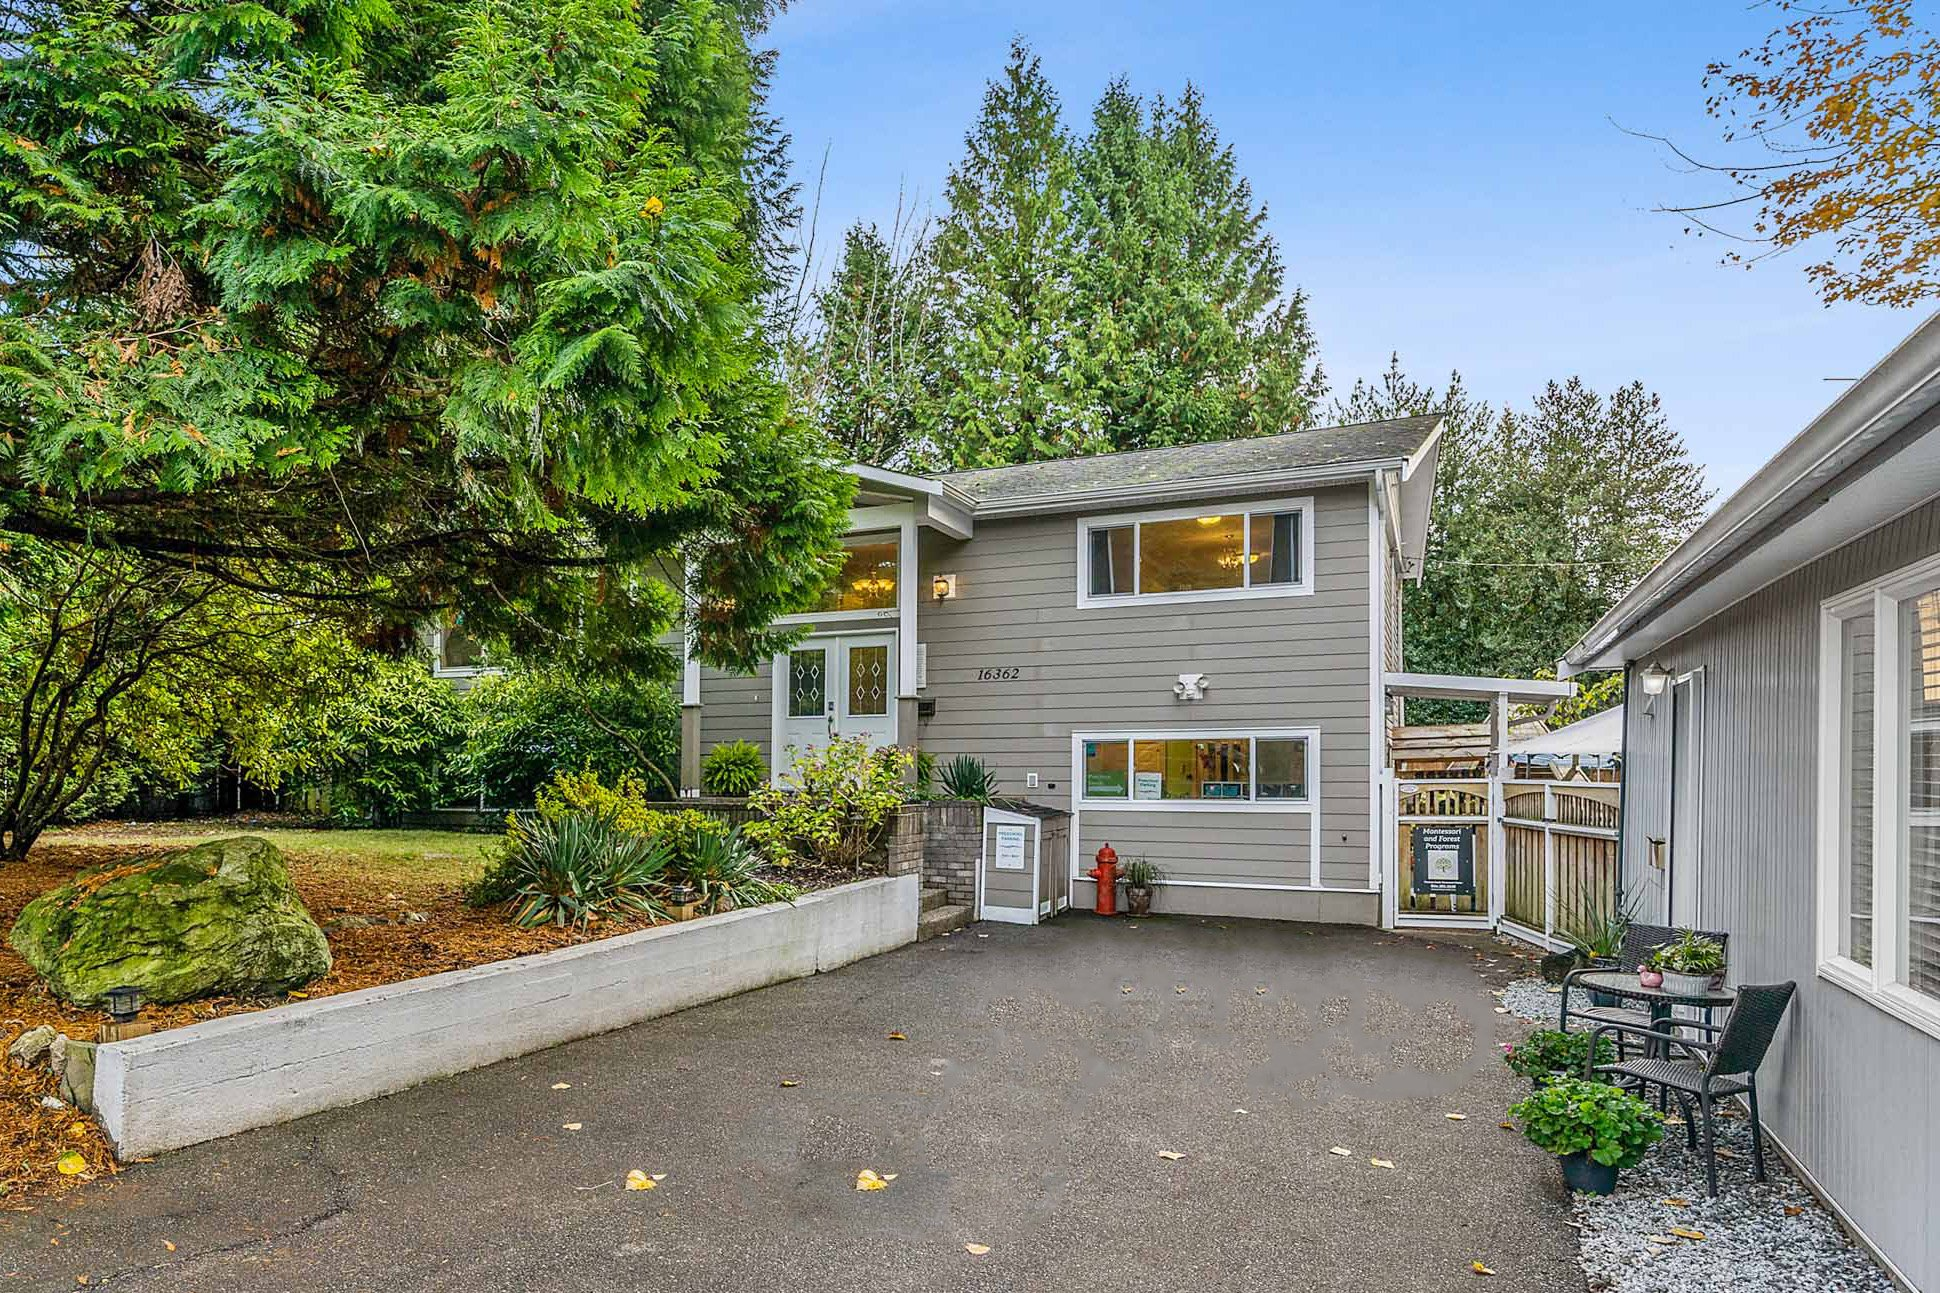 Main Photo: 16362 14A Avenue in Surrey: King George Corridor House for sale (South Surrey White Rock)  : MLS®# R2510249